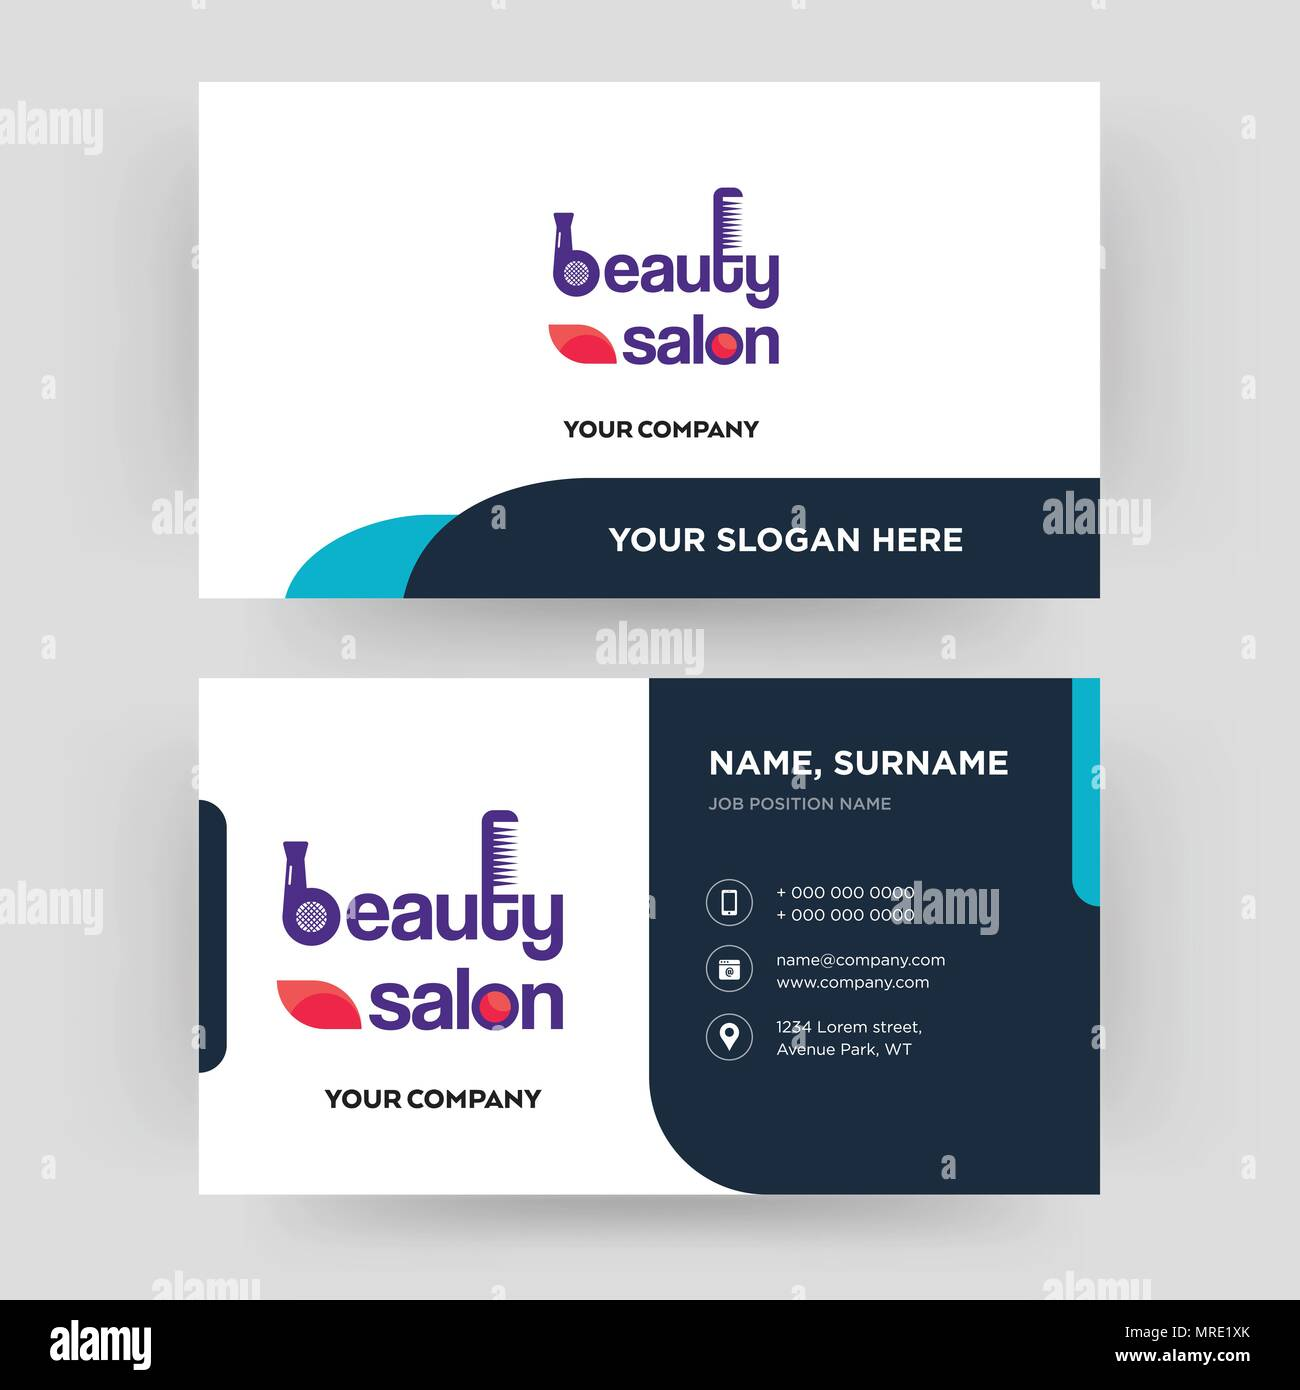 beauty salon, business card design template, Visiting for your ...